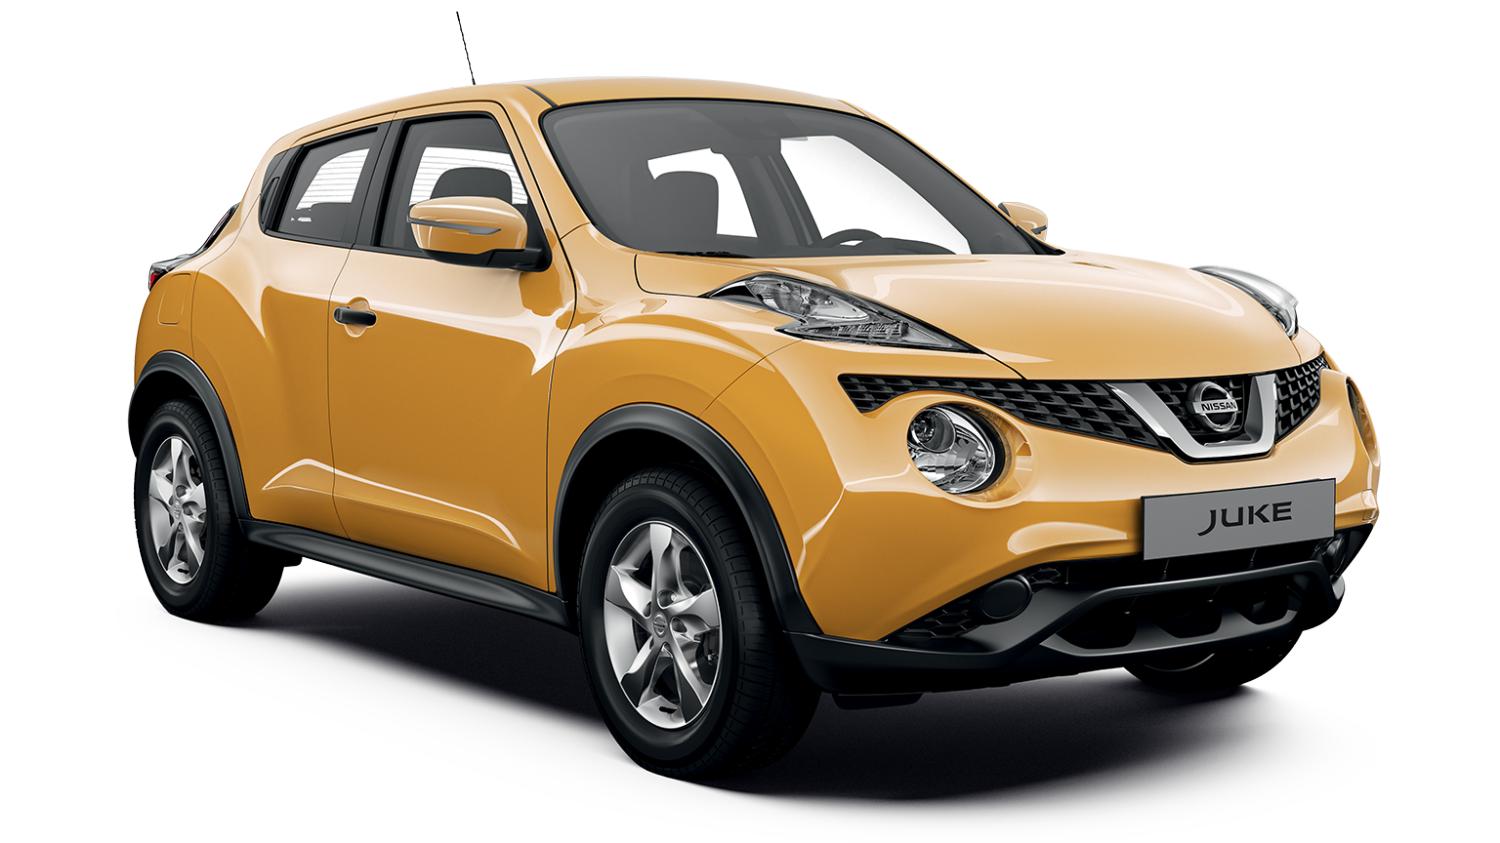 ceny i specyfikacje nissan juke crossover nissan. Black Bedroom Furniture Sets. Home Design Ideas